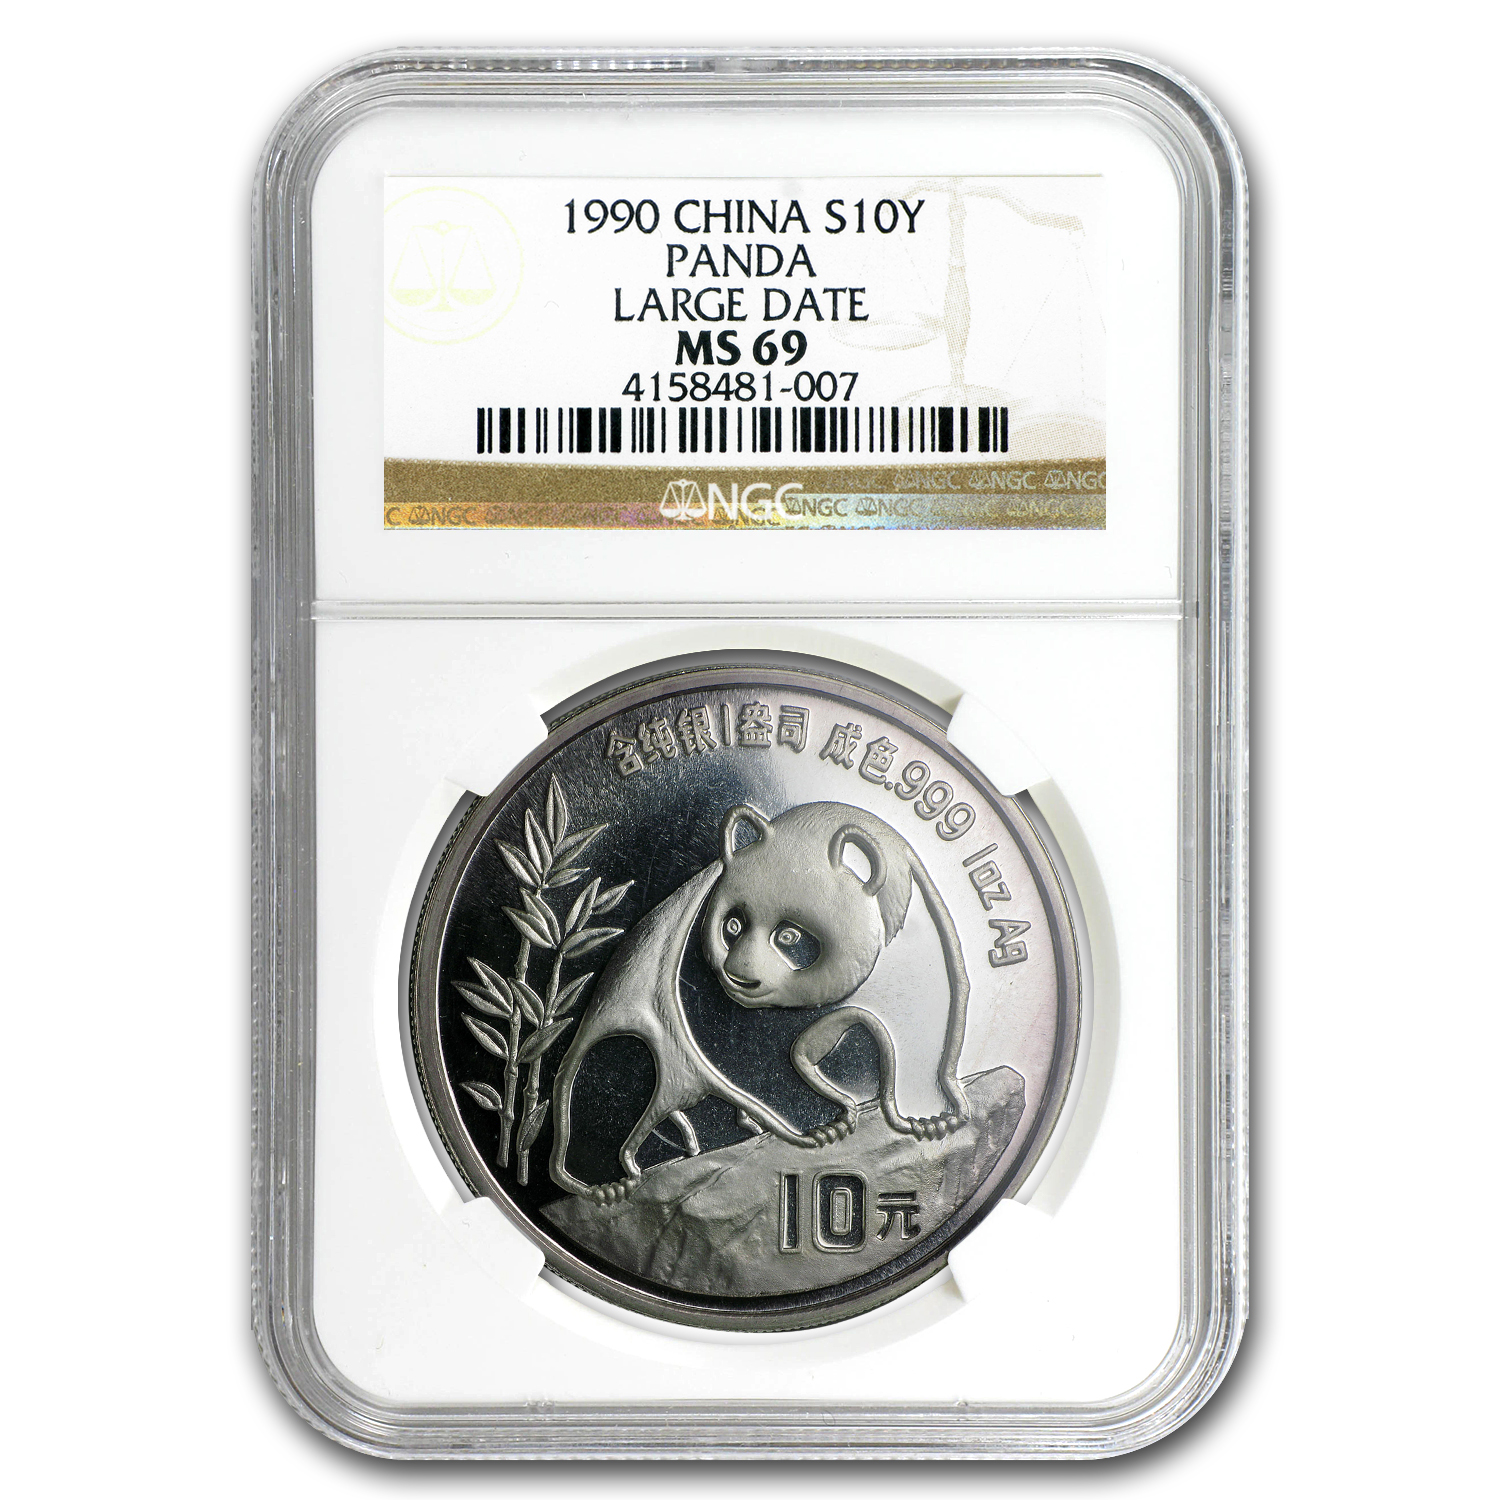 1990 1 oz Silver Chinese Panda - MS-69 NGC - Large Date